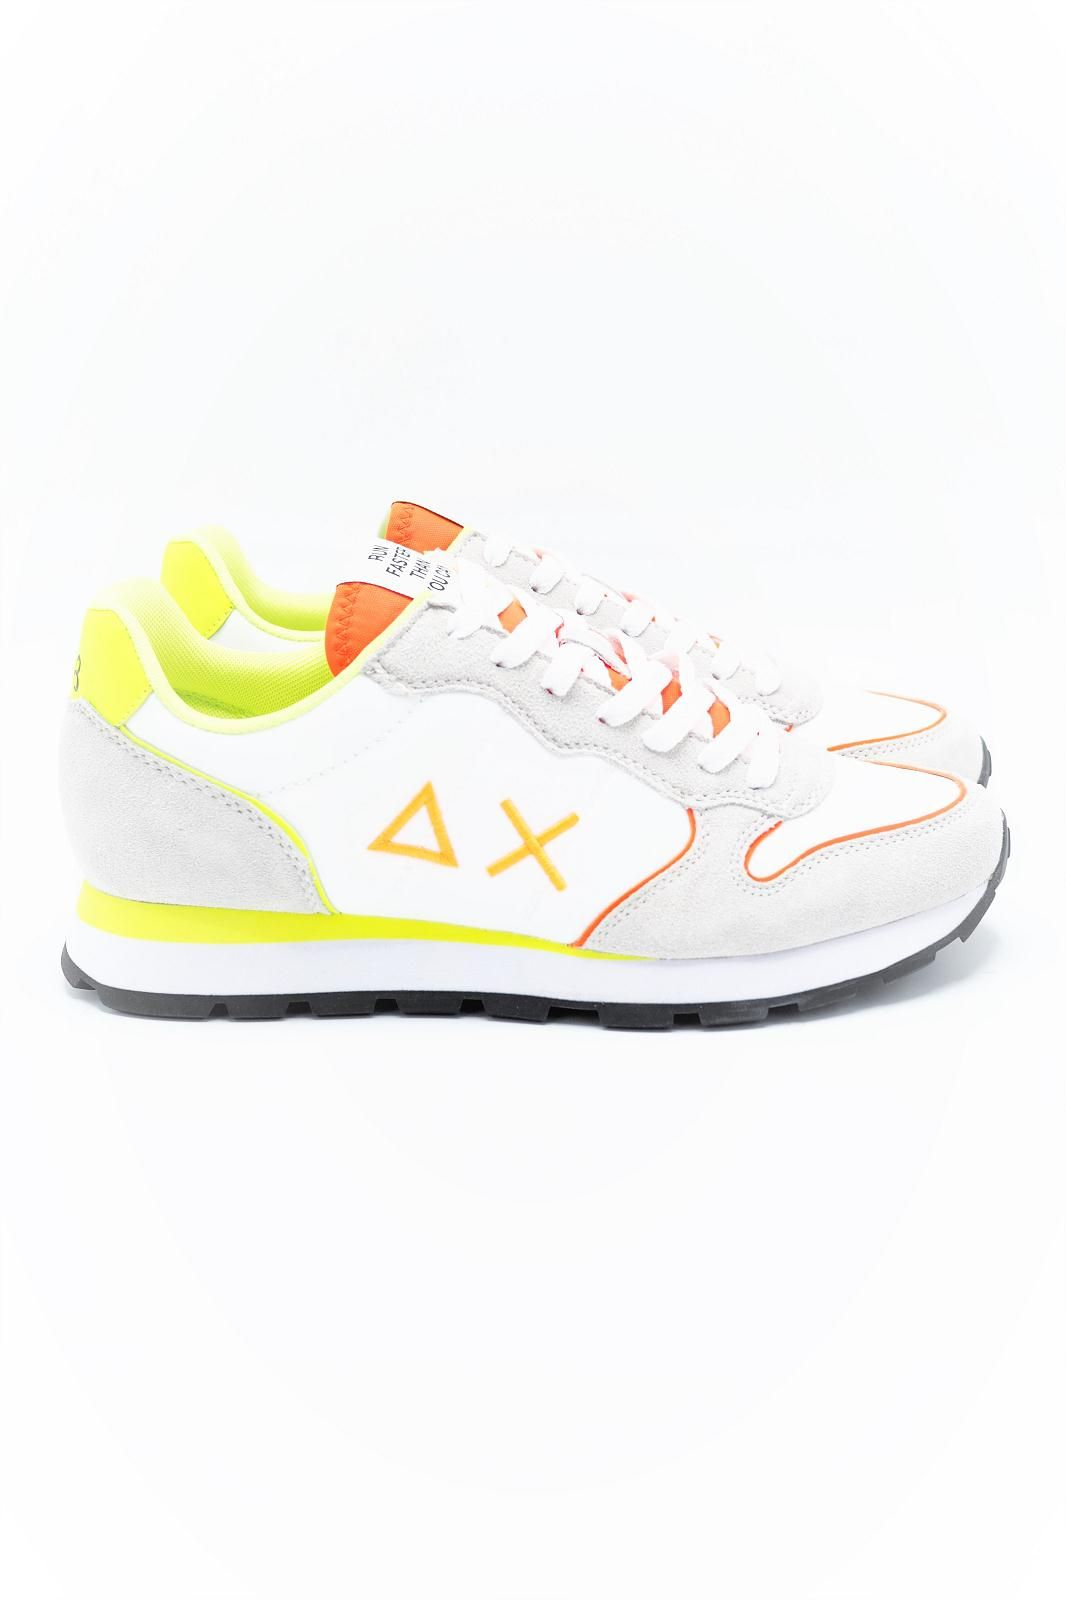 SUN68 basket bas Blanc hommes (SUN68-Runner basic  - CPZ31102 Runner blanc fluo) - Marine | Much more than shoes